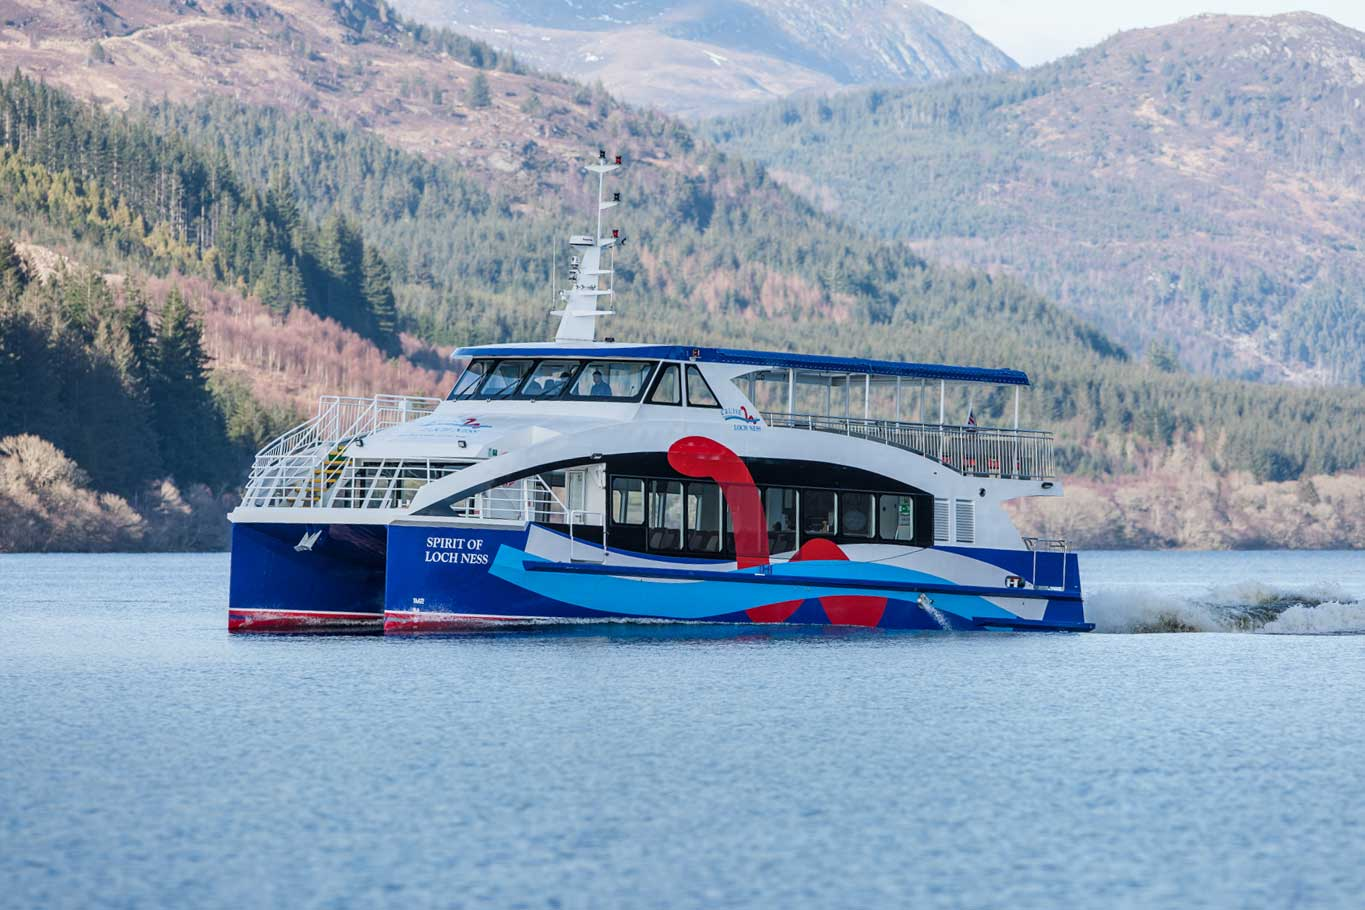 Spirit of Loch Ness